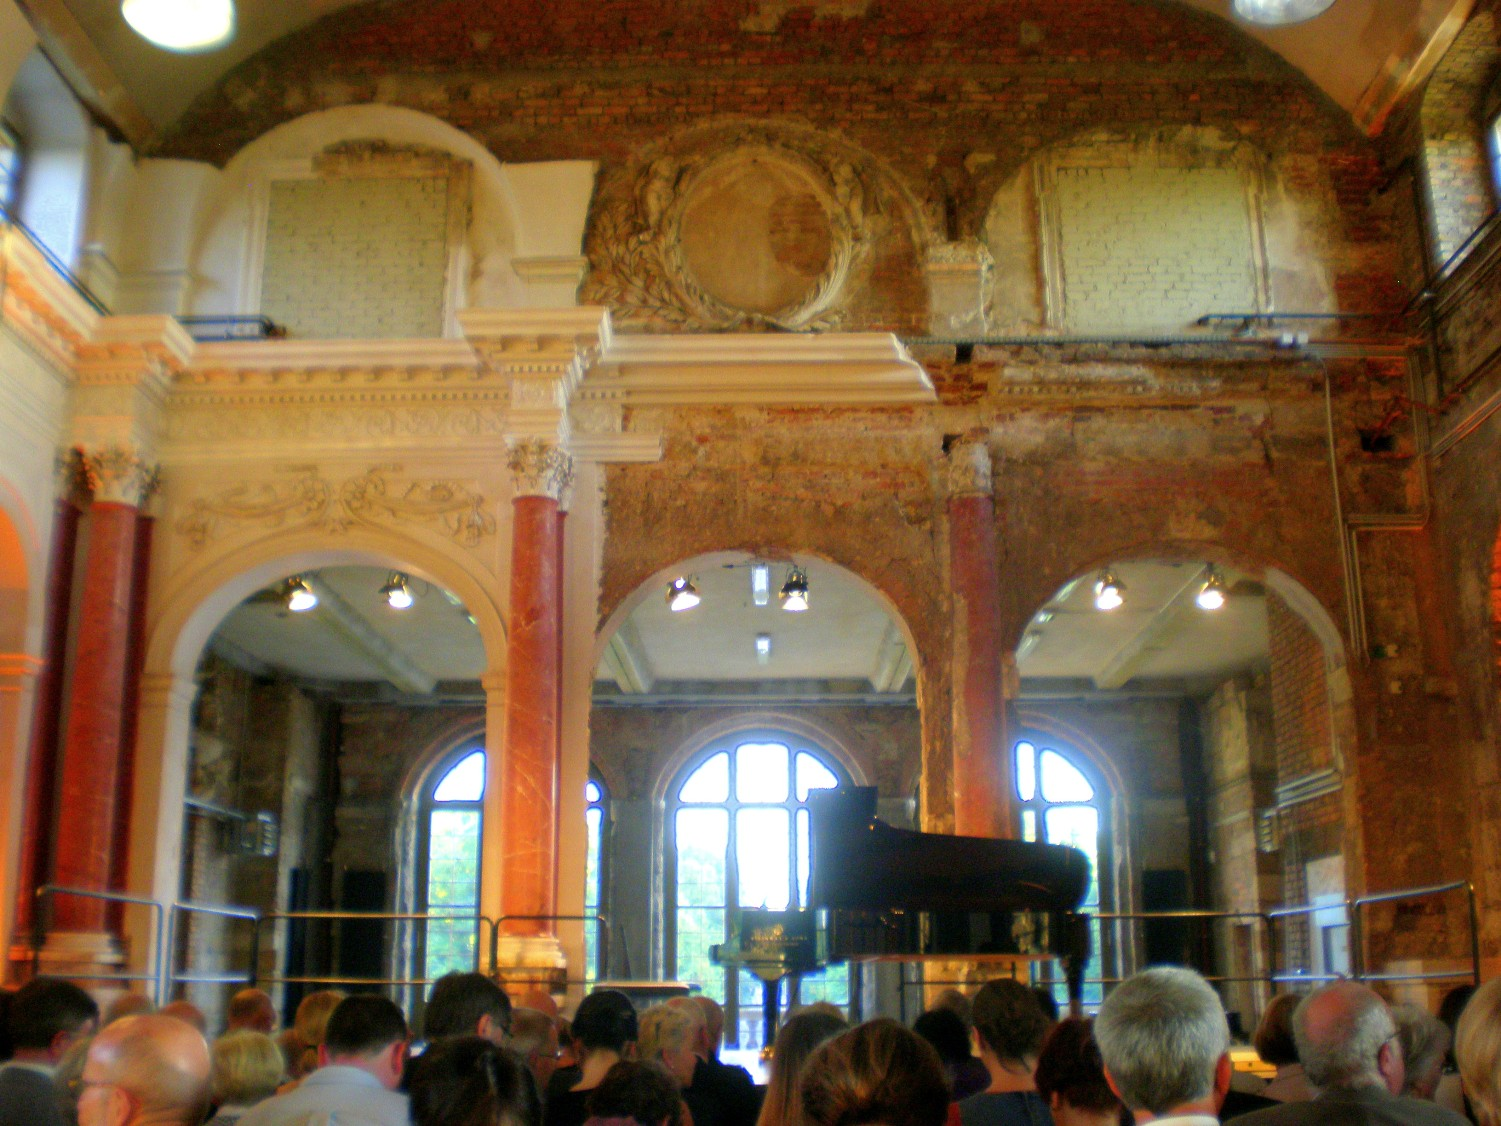 Interior of Palais in Garten, Dresden